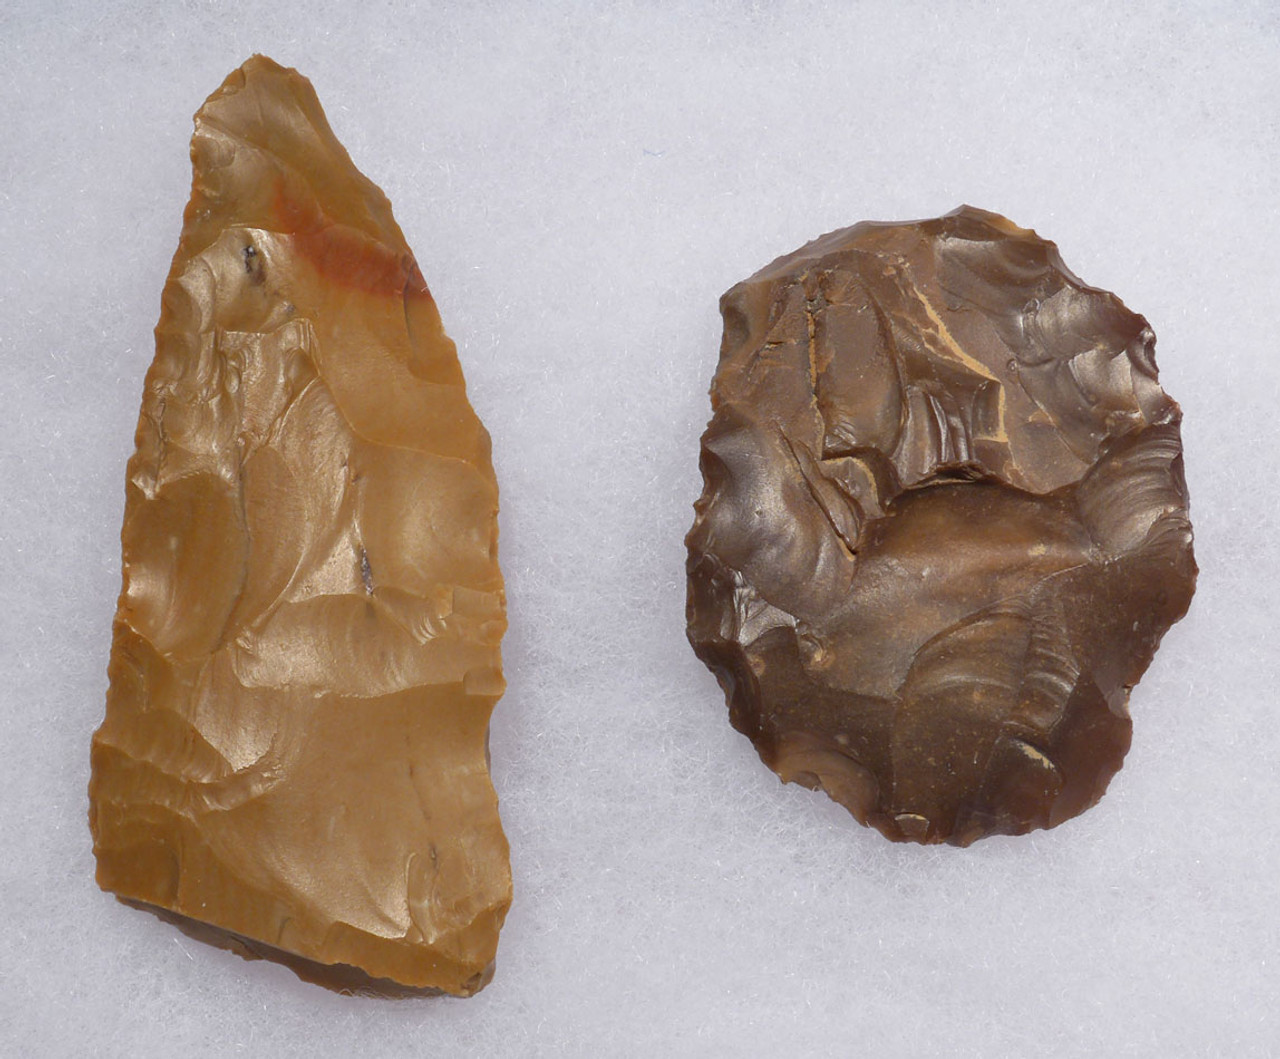 TWO SPECTACULAR ATERIAN AFRICAN PREHISTORIC FLAKE TOOLS OF THE  MIDDLE PALEOLITHIC  *AT110